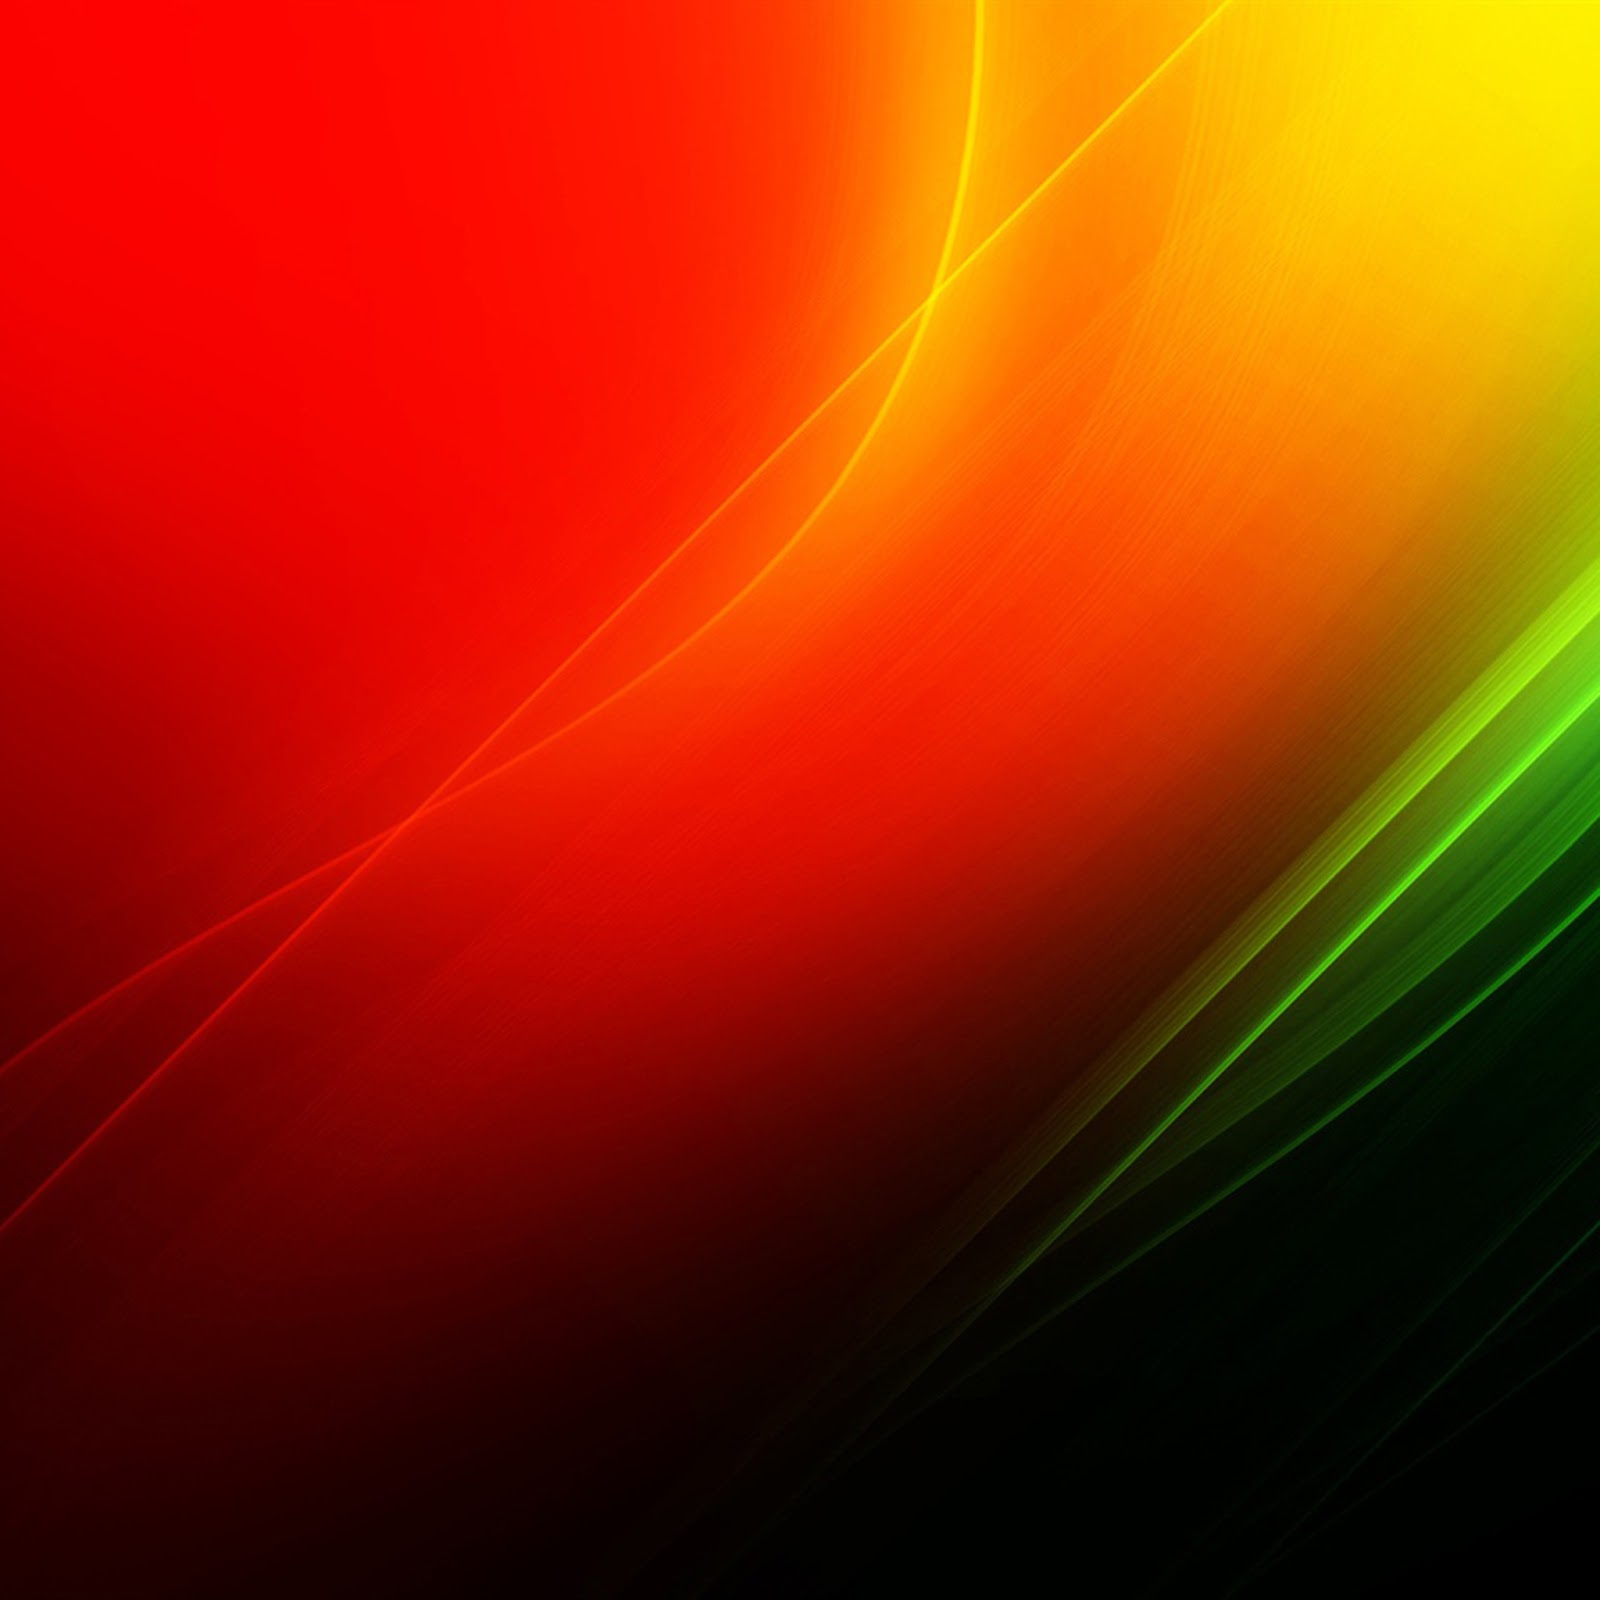 ipad iphone android hd wallpaper collection 2